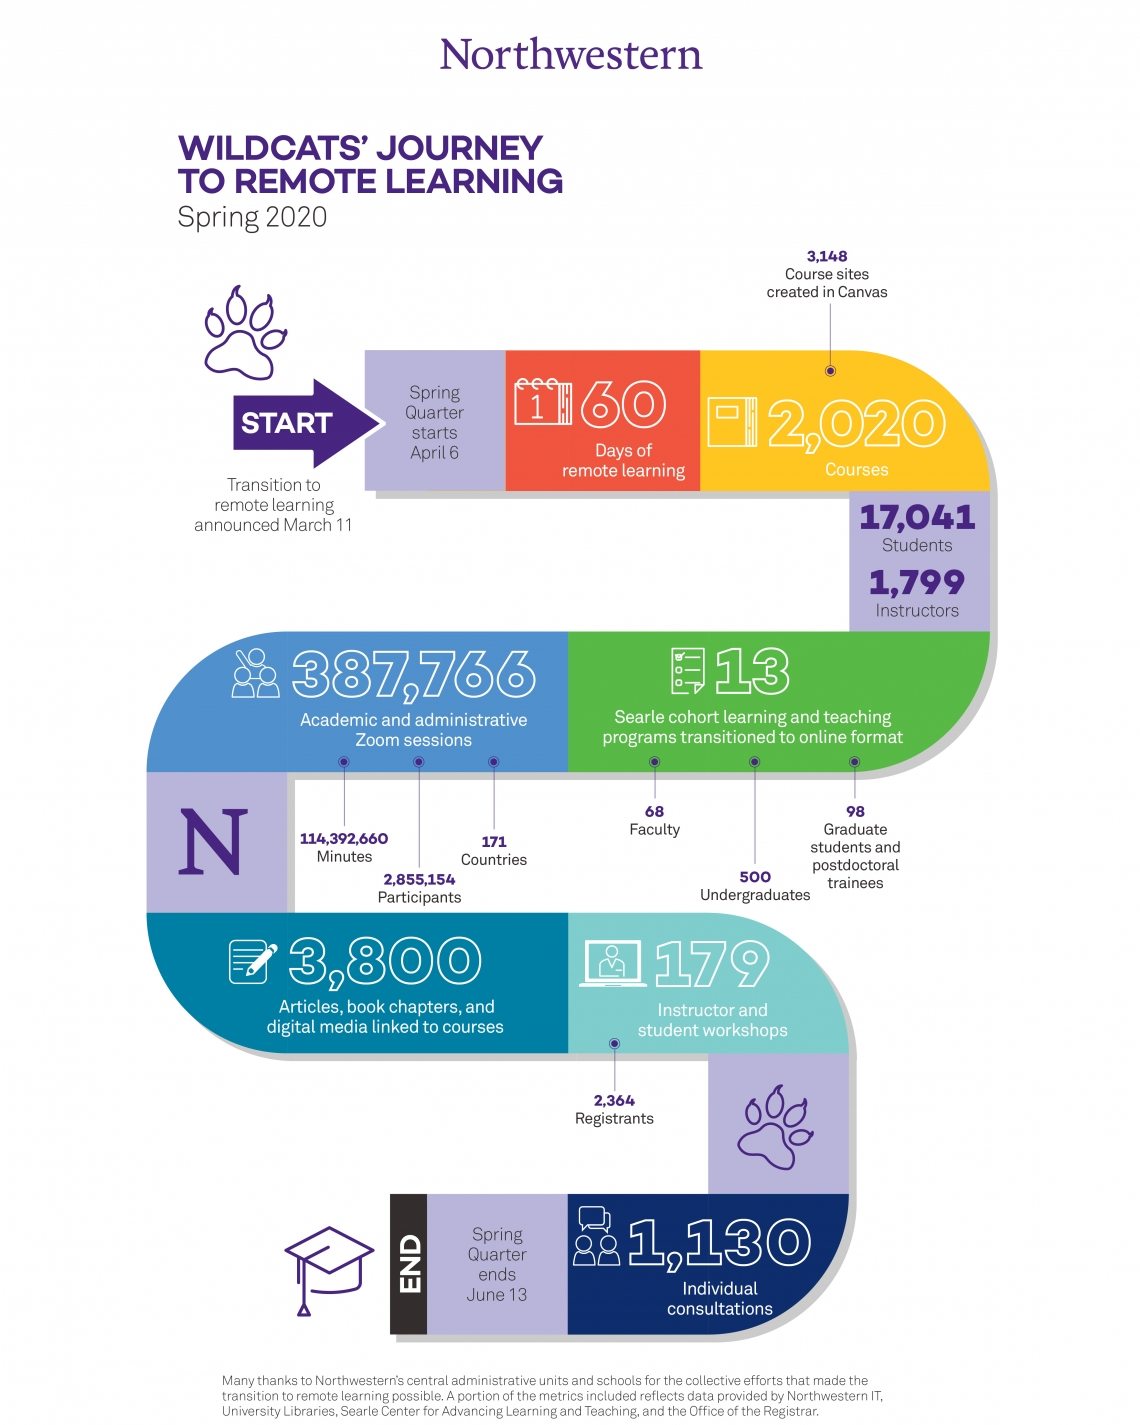 infographic of Wildcats' Journey to Remote Learning Spring 2020